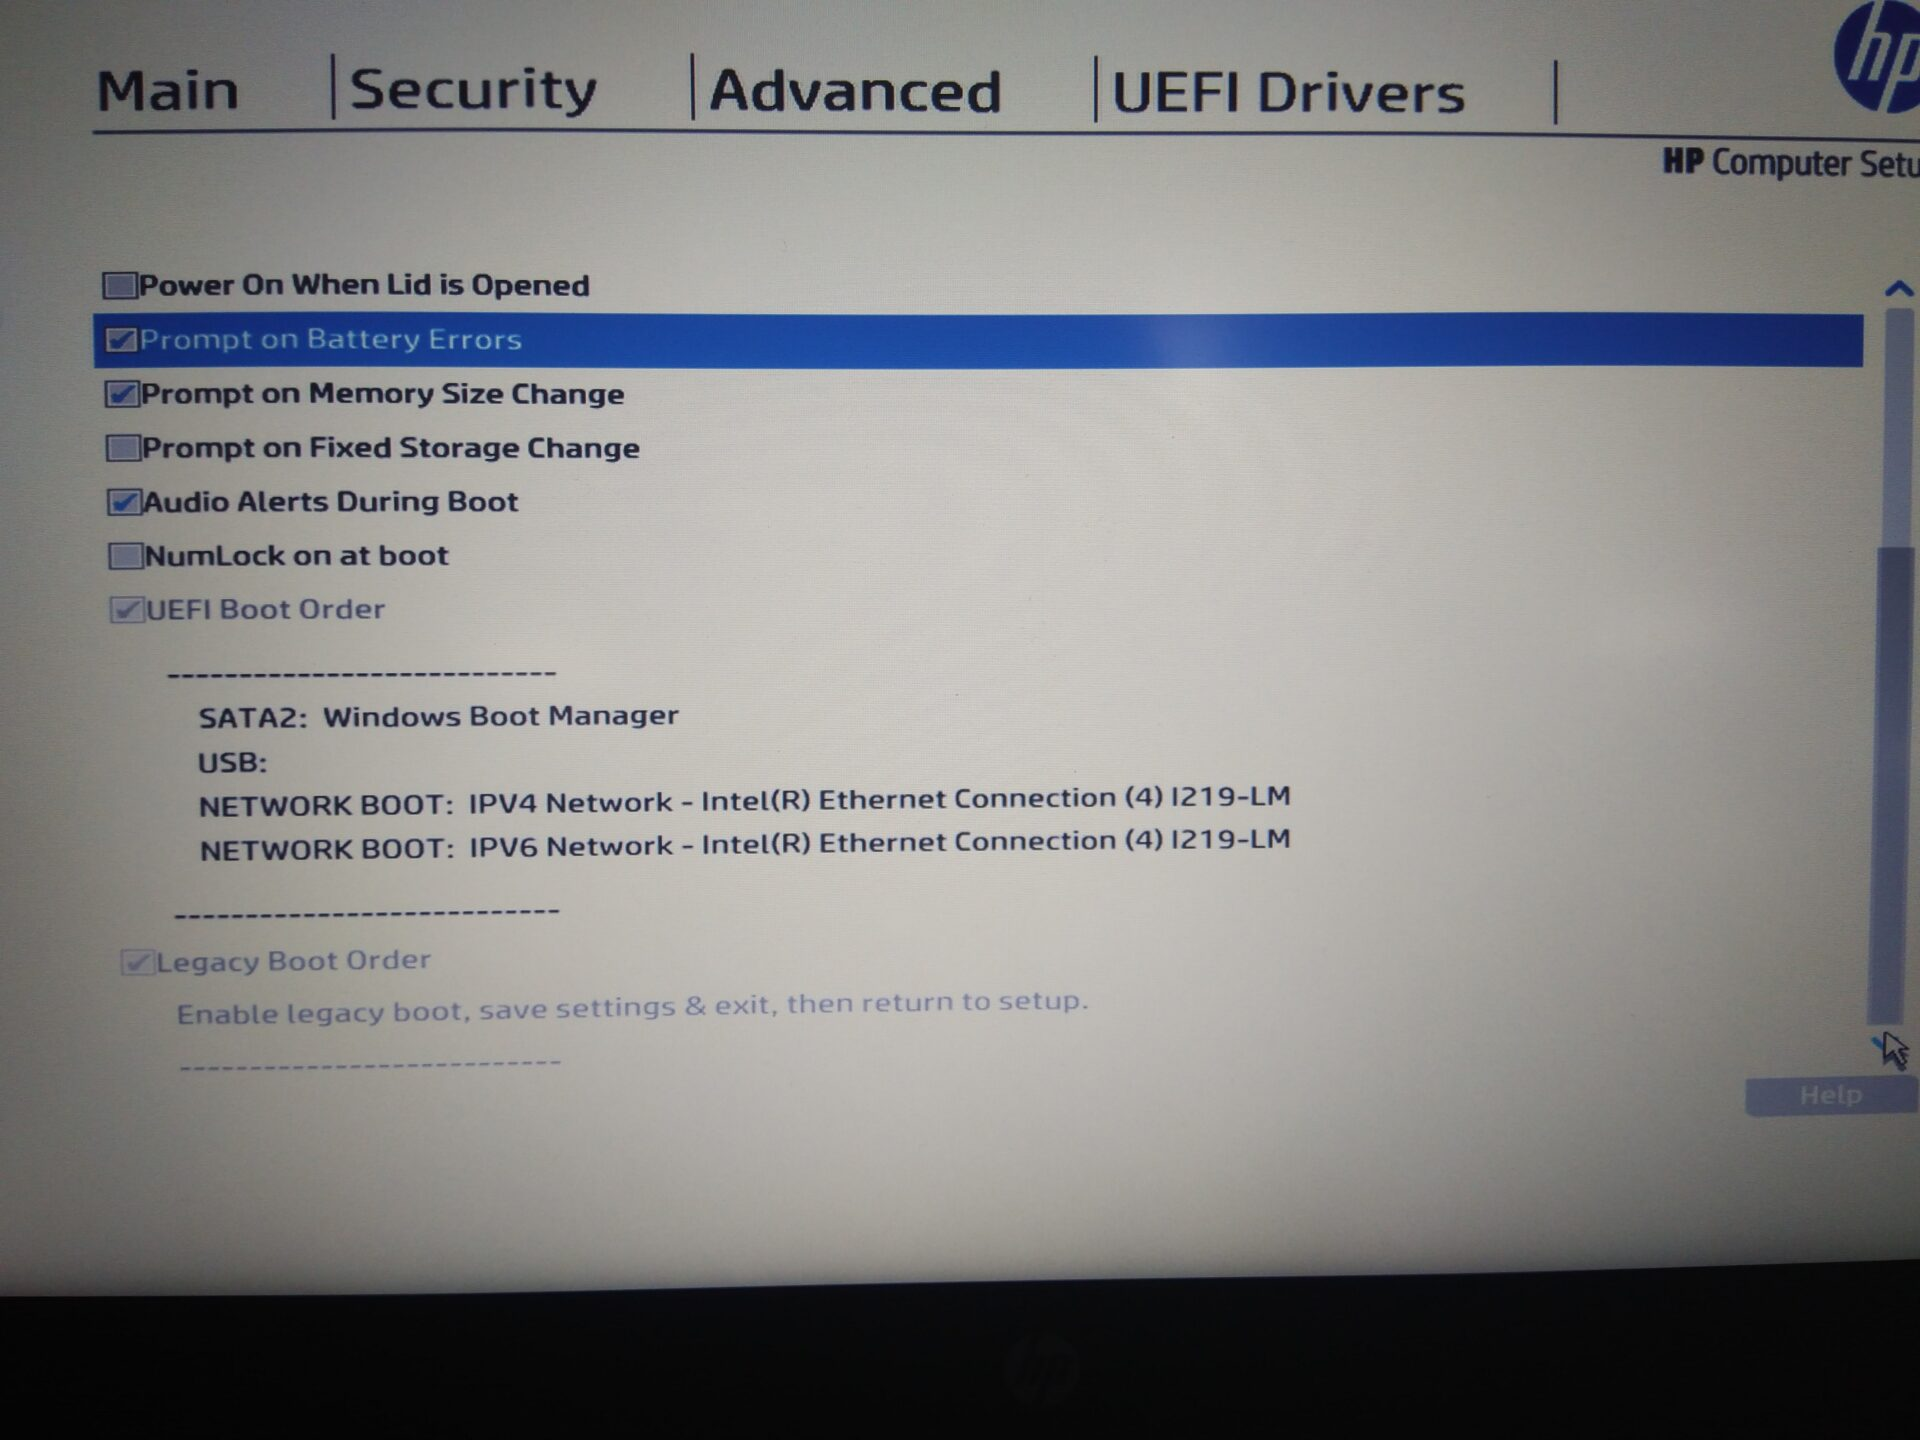 How to start Image in UEFI mode on HP laptop 840 G4 Model